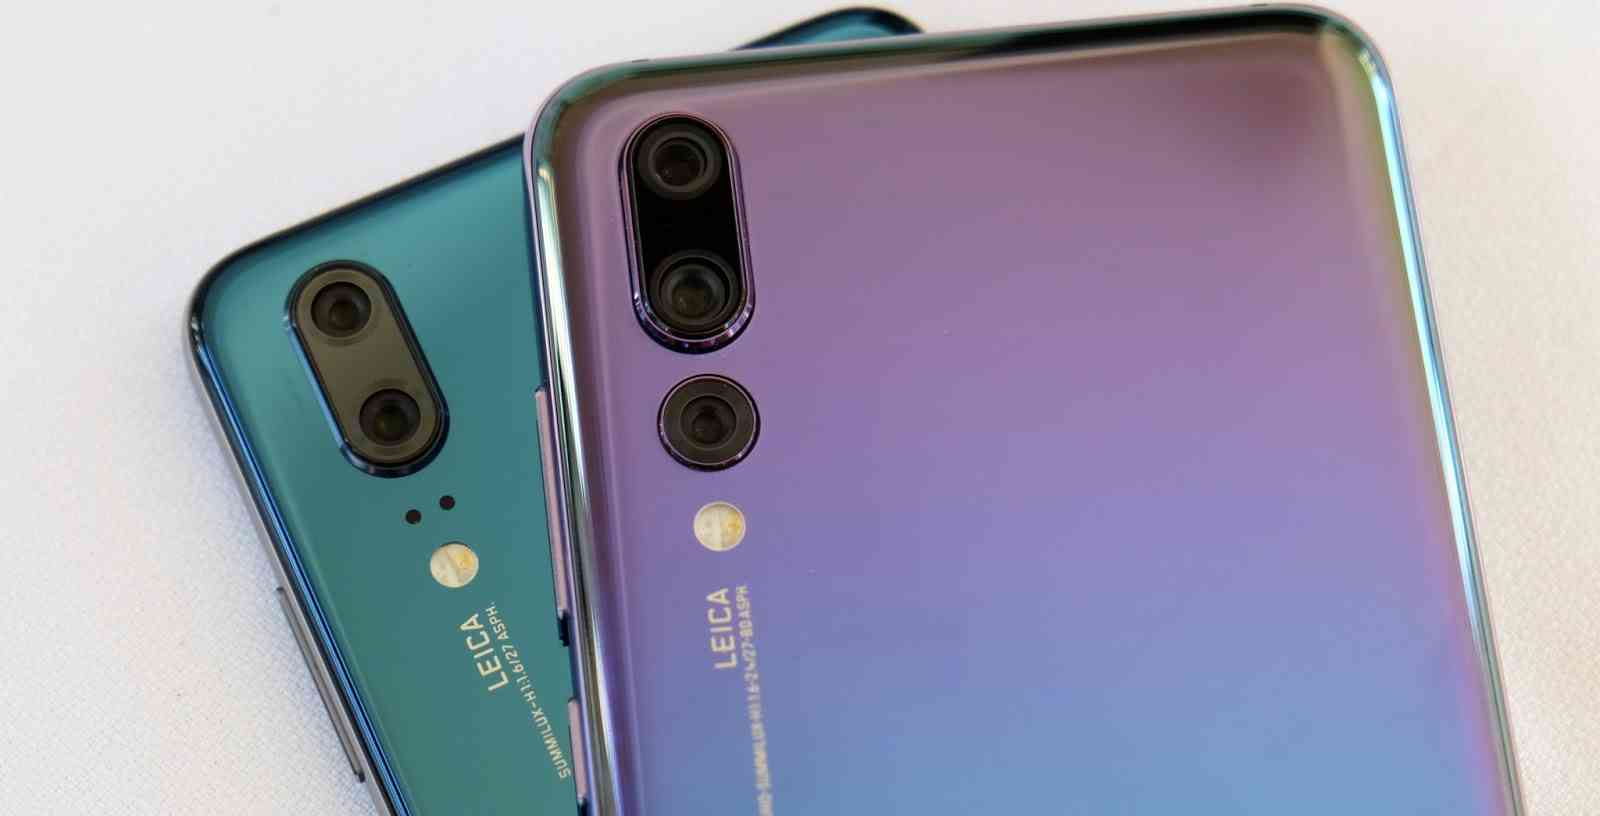 The Huawei P20 Pro Quick 2mins Camera Overview